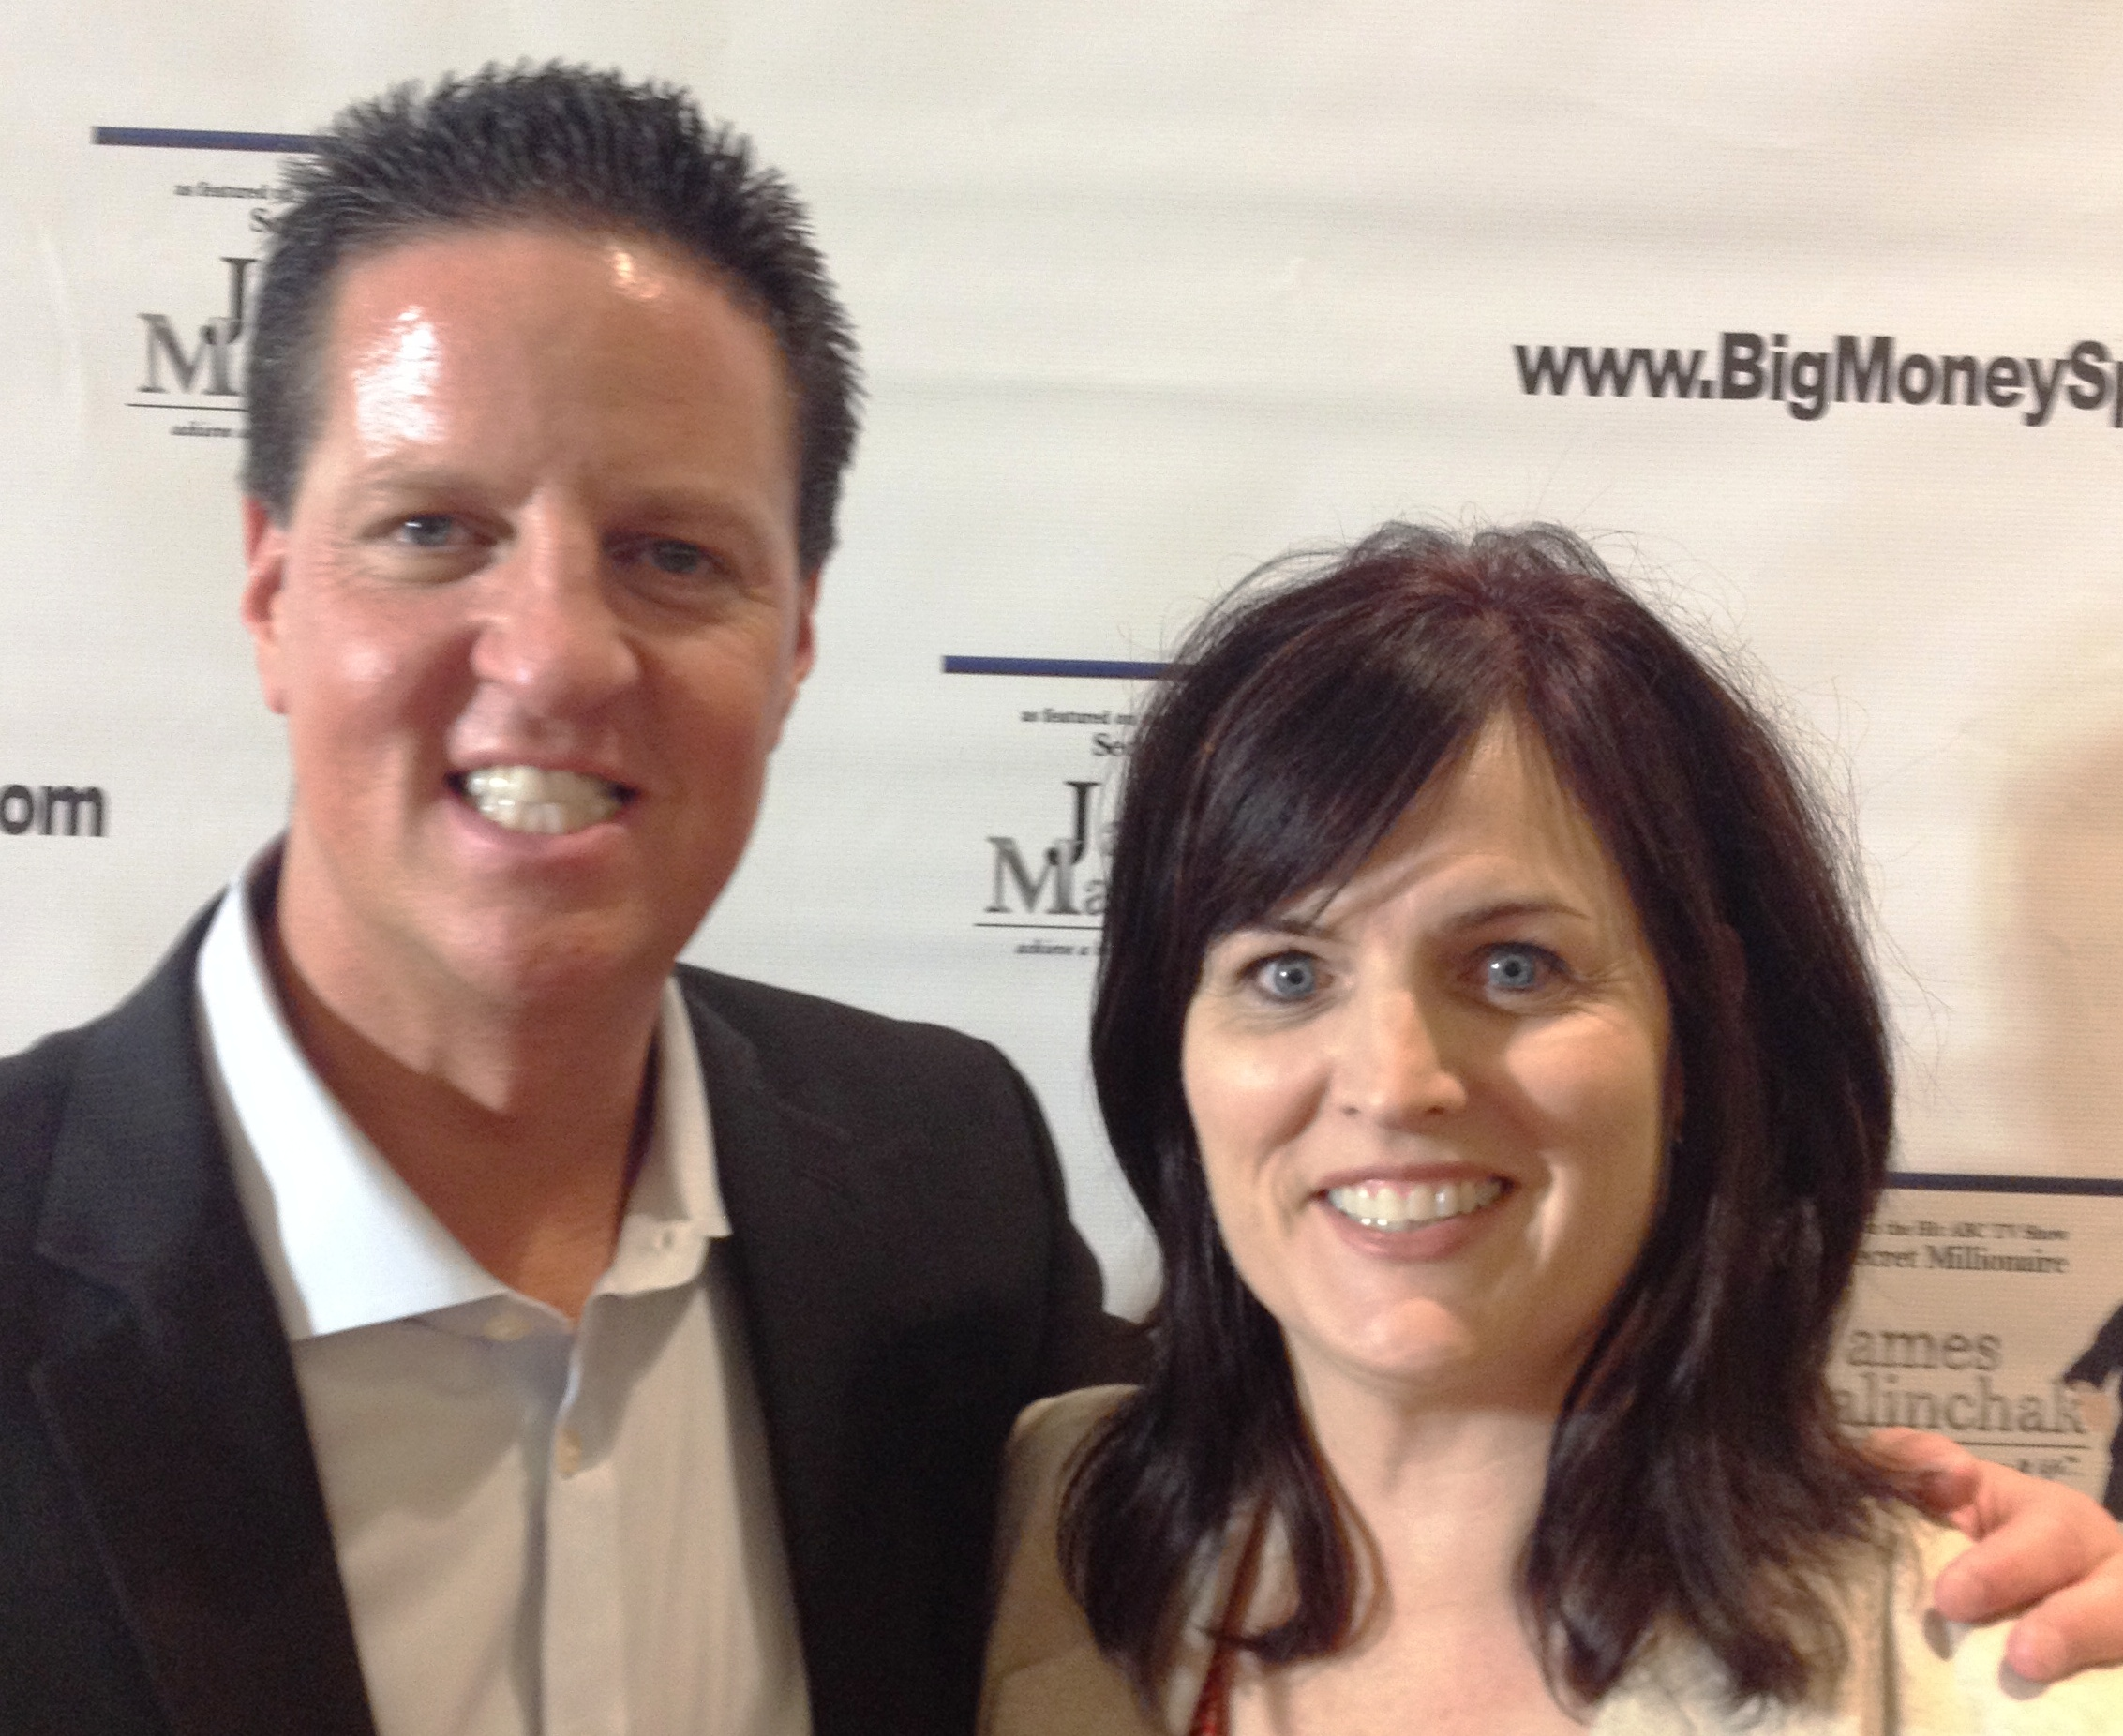 Danette Layne with James Malinchak, Speaker and star of Secret Millionaire